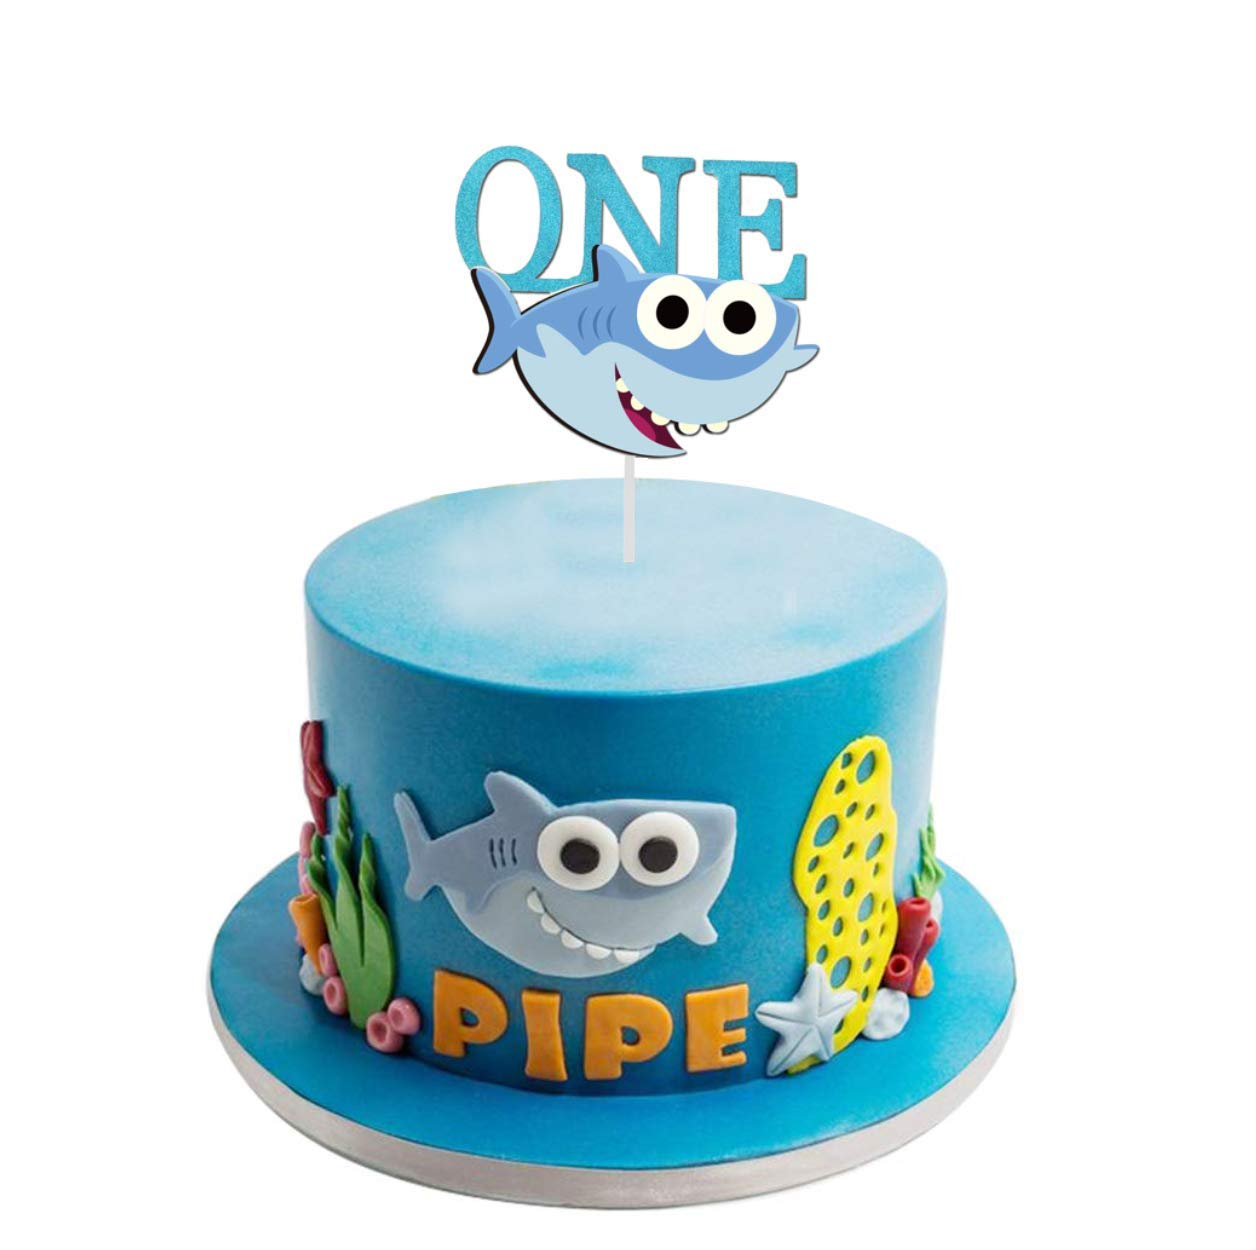 Pleasant Amazon Com Aby Shark One Birthday Cake Topper For 1St First Funny Birthday Cards Online Alyptdamsfinfo